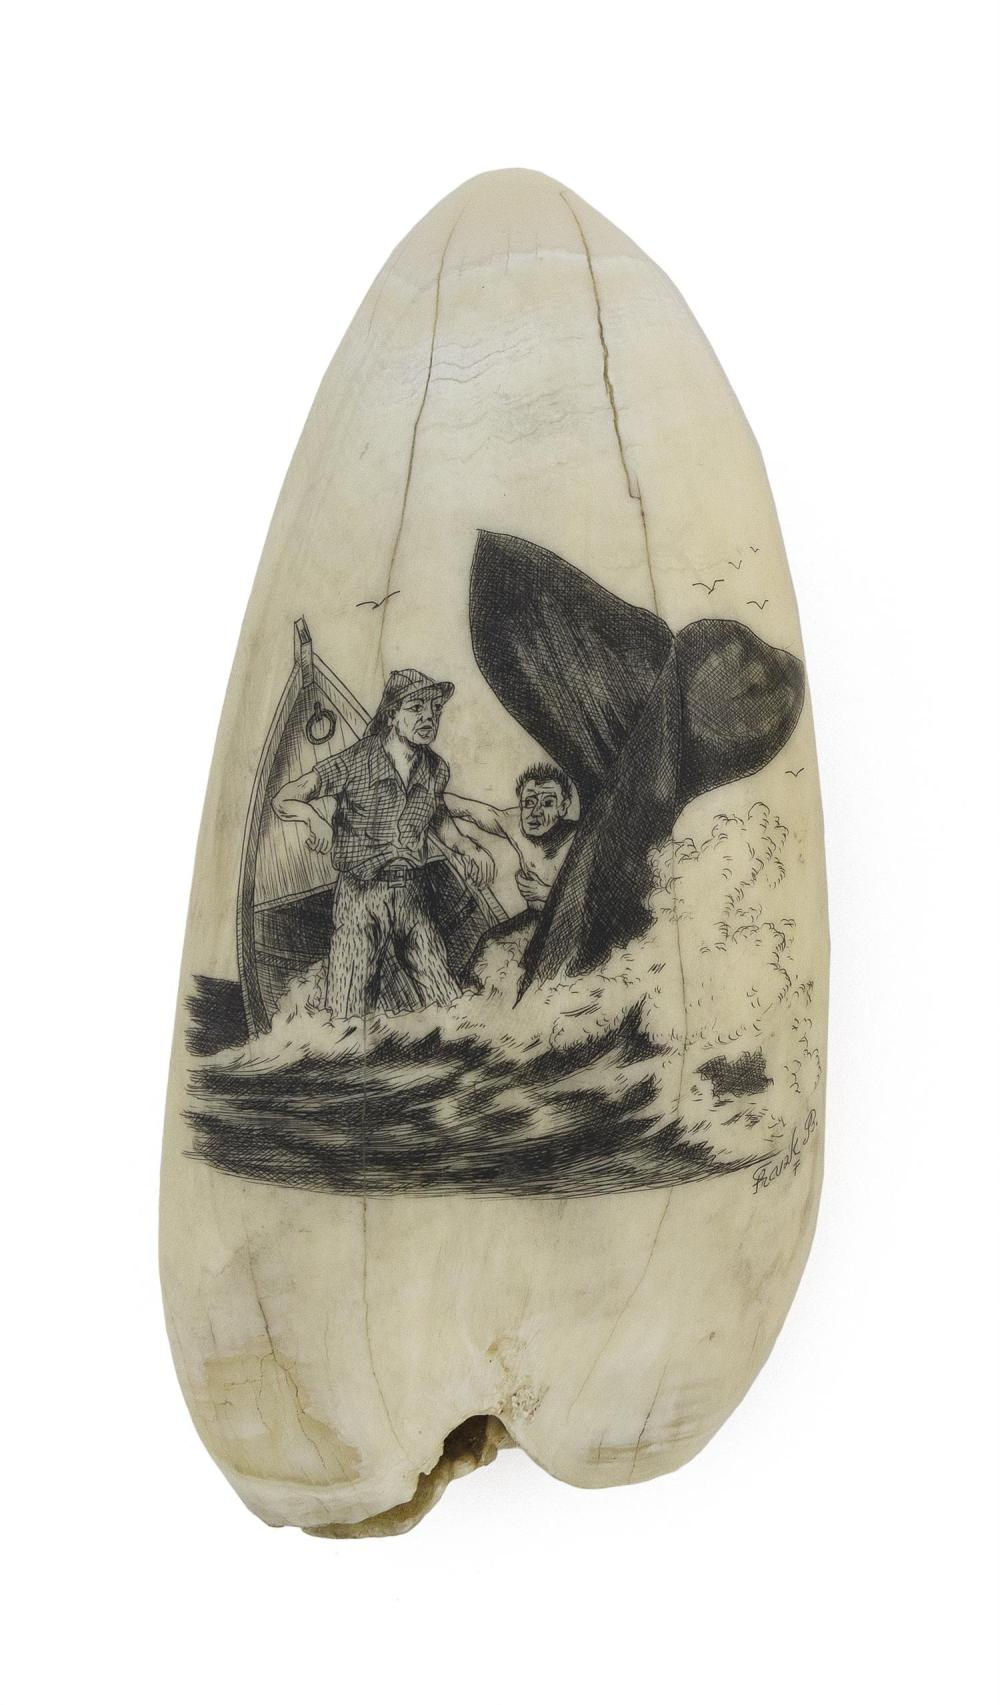 * ENGRAVED WHALE'S TOOTH BY FRANK BARCELOS Depicts two whalemen in a stoved boat, with the whale's tail still visible. Signed lower..